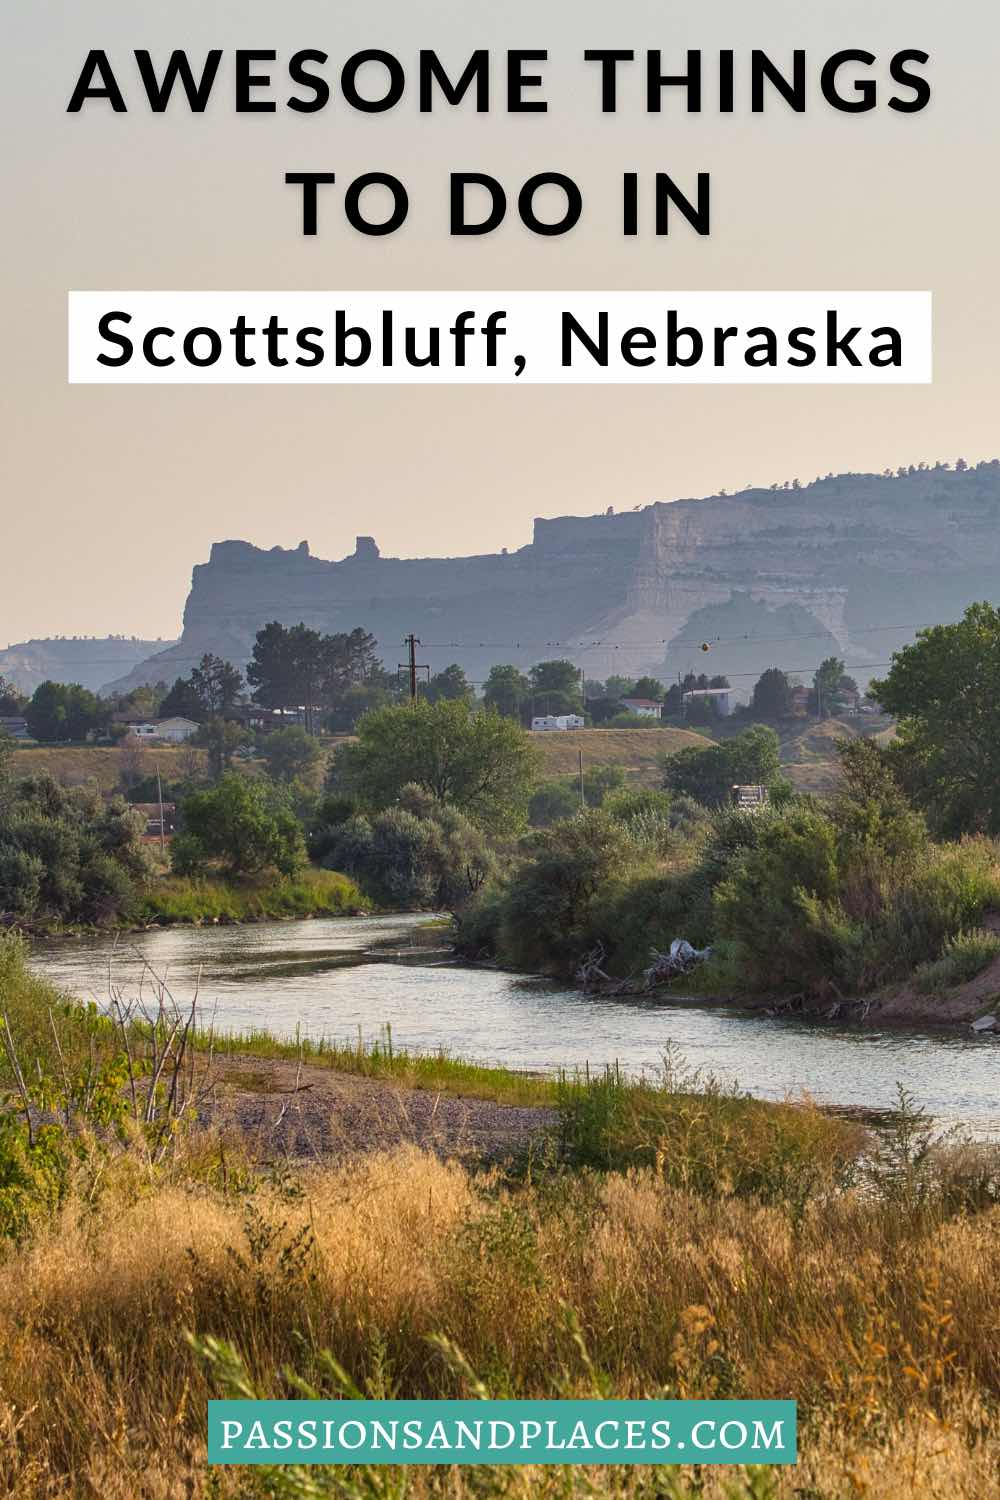 Scottsbluff, NE, is an offbeat town in western Nebraska with a lot to offer. This list of things to do in Scottsbluff includes art, history, food, outdoors, and much more. Read about museums, restaurants, day trips from Scottsbluff, and of course Scotts Bluff National Monument. #scottsbluffne #nebraskapandandle #westnebraska